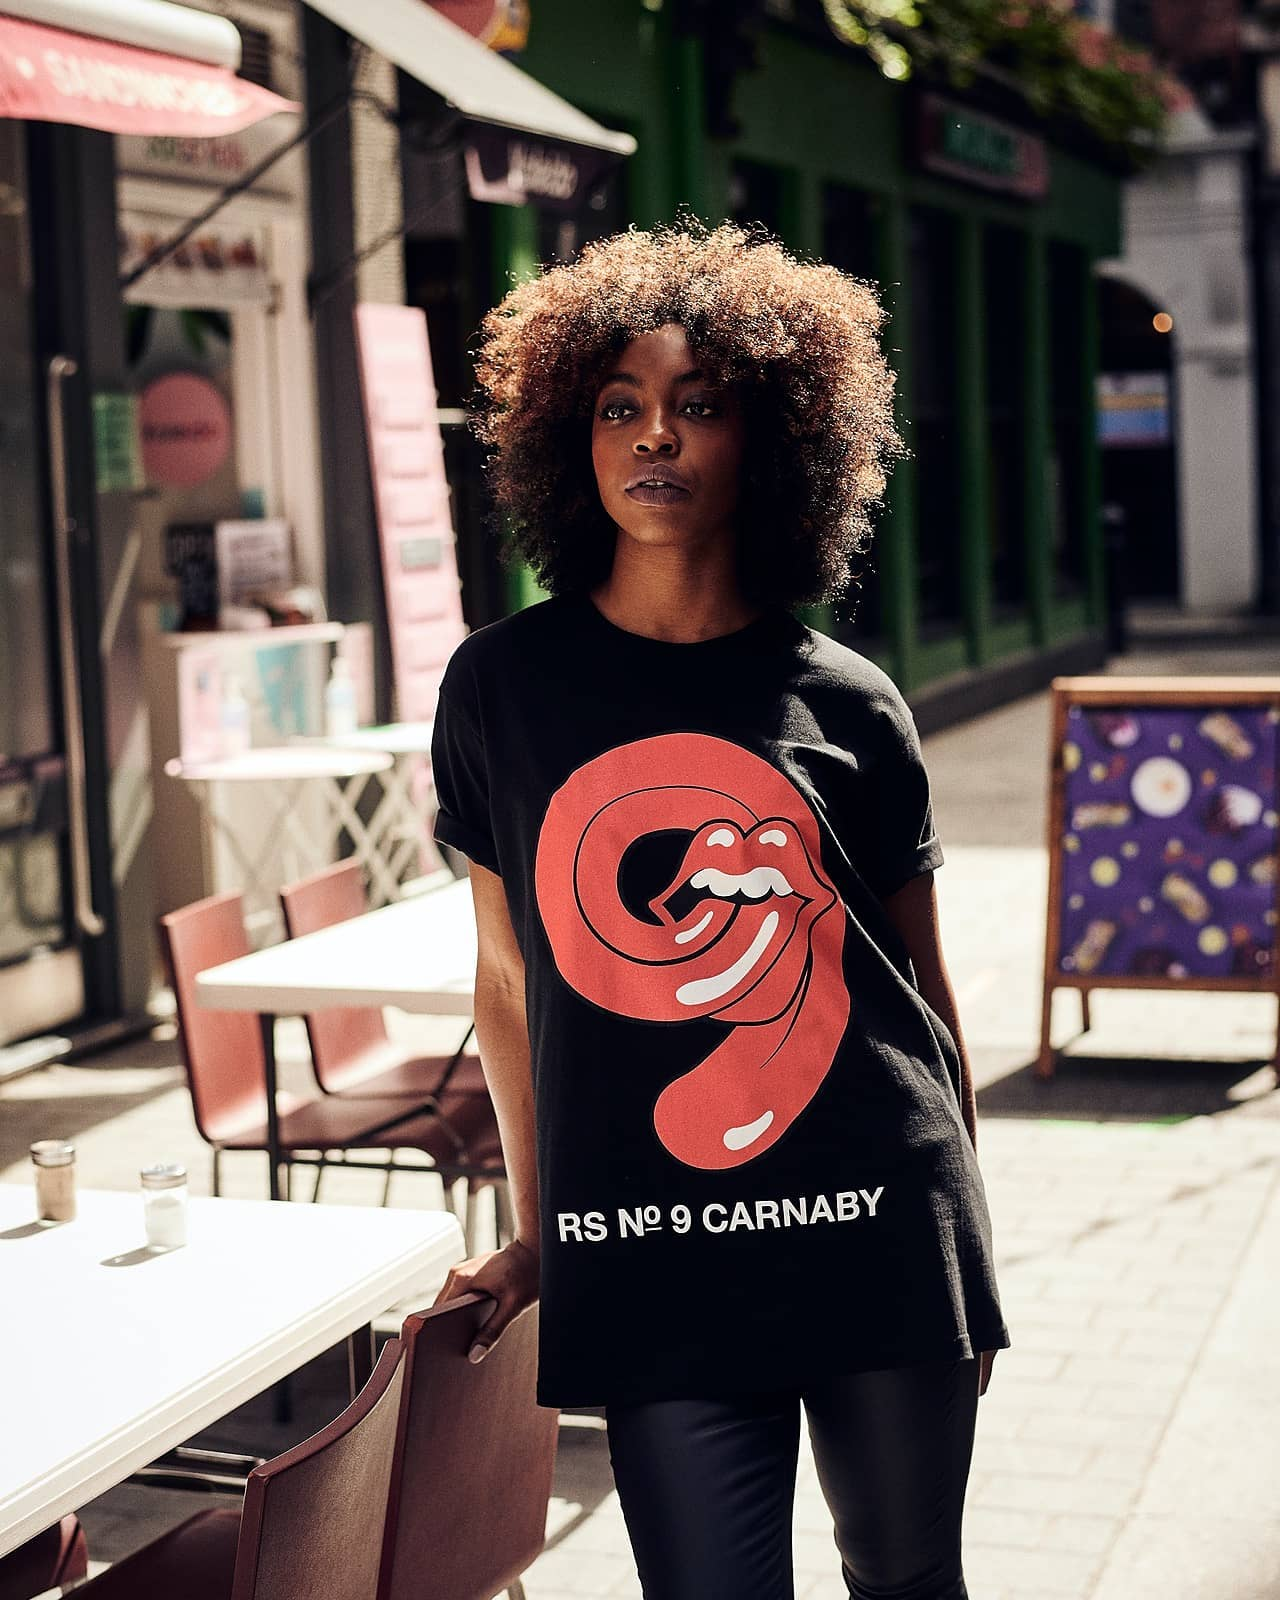 RS No. 9 Carnaby Street features customized T-shirts, brand collaborations and merchandise